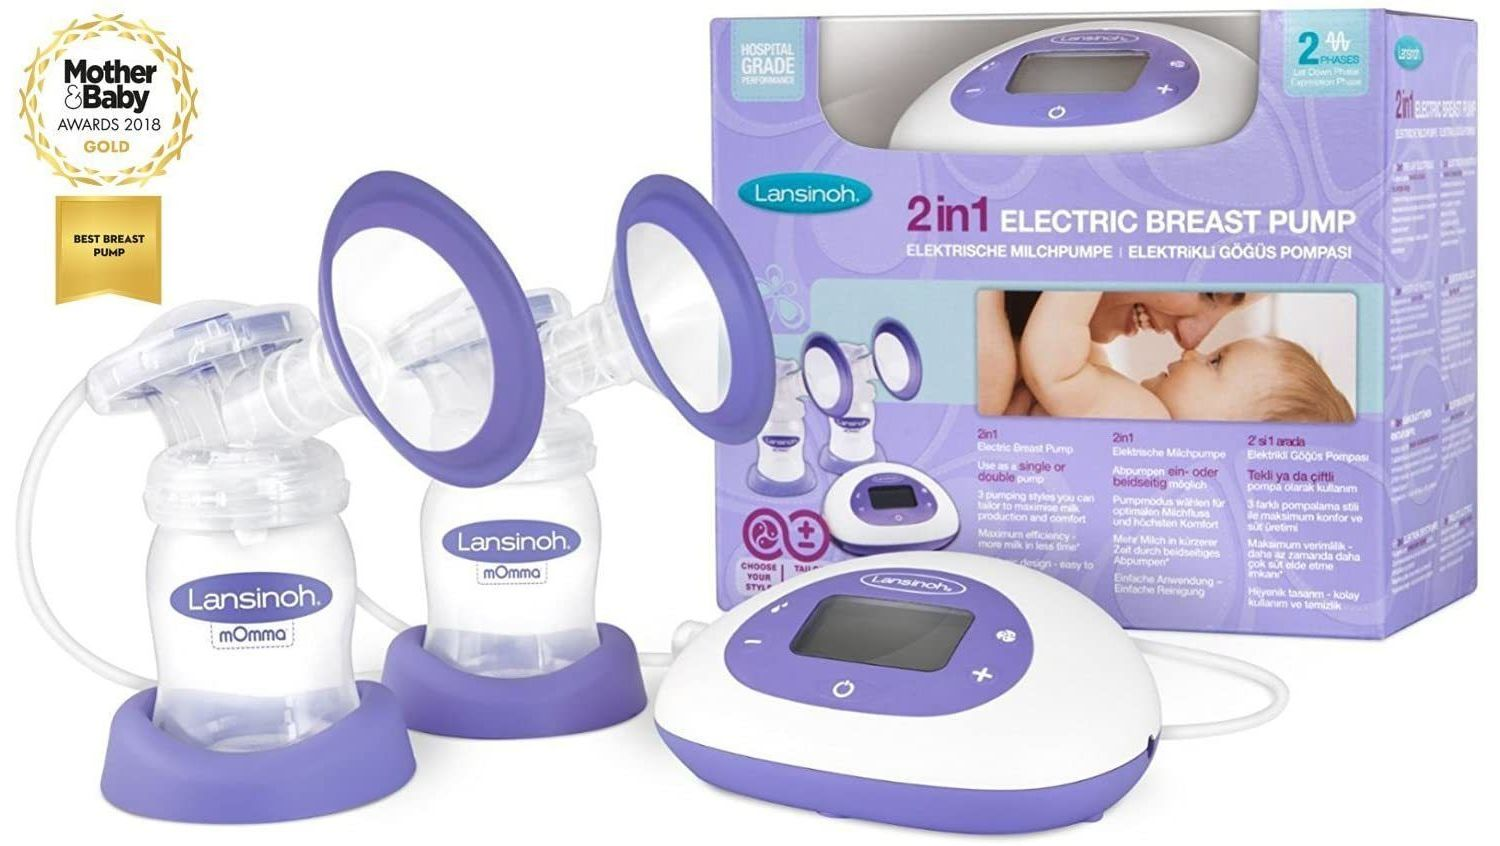 Lansinoh 2 in 1 Double Electric Breast Pump